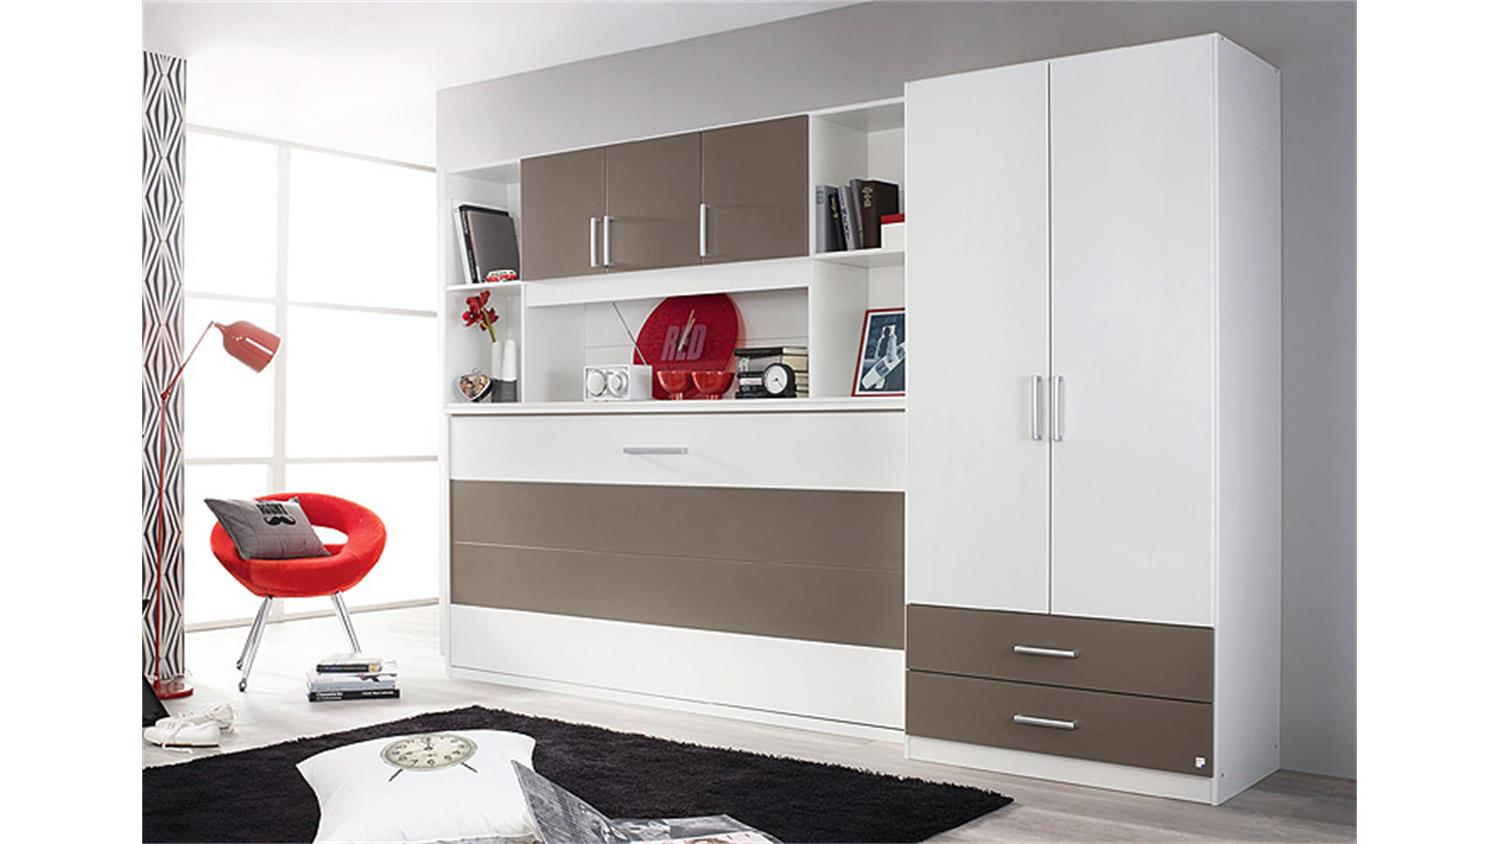 klappbett set albero wei und lavagrau 90x200 cm. Black Bedroom Furniture Sets. Home Design Ideas